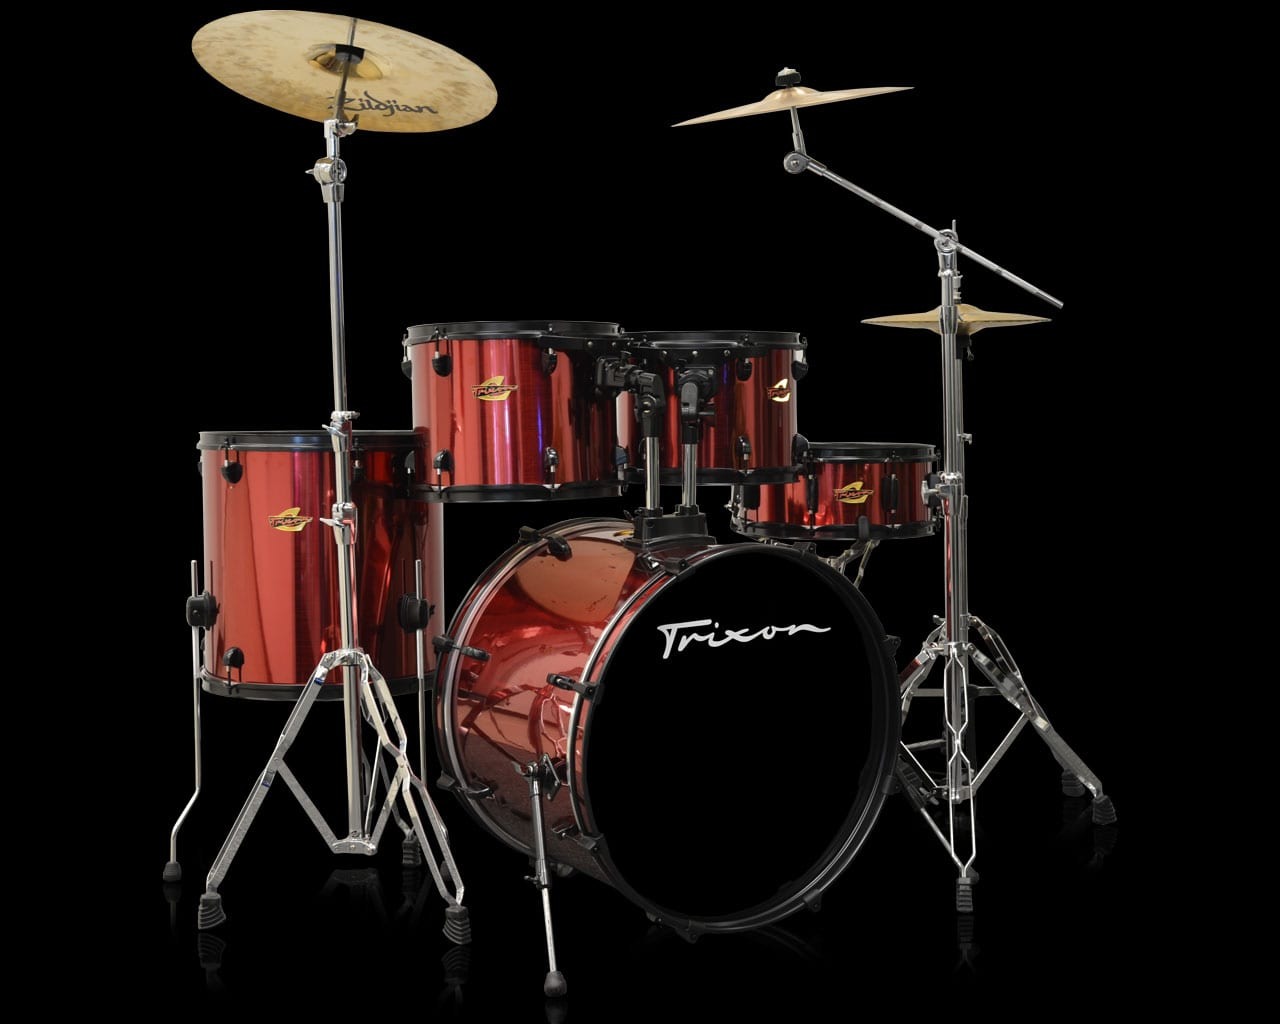 Trixon 5-Piece Birch Kit – Stainless Crimson